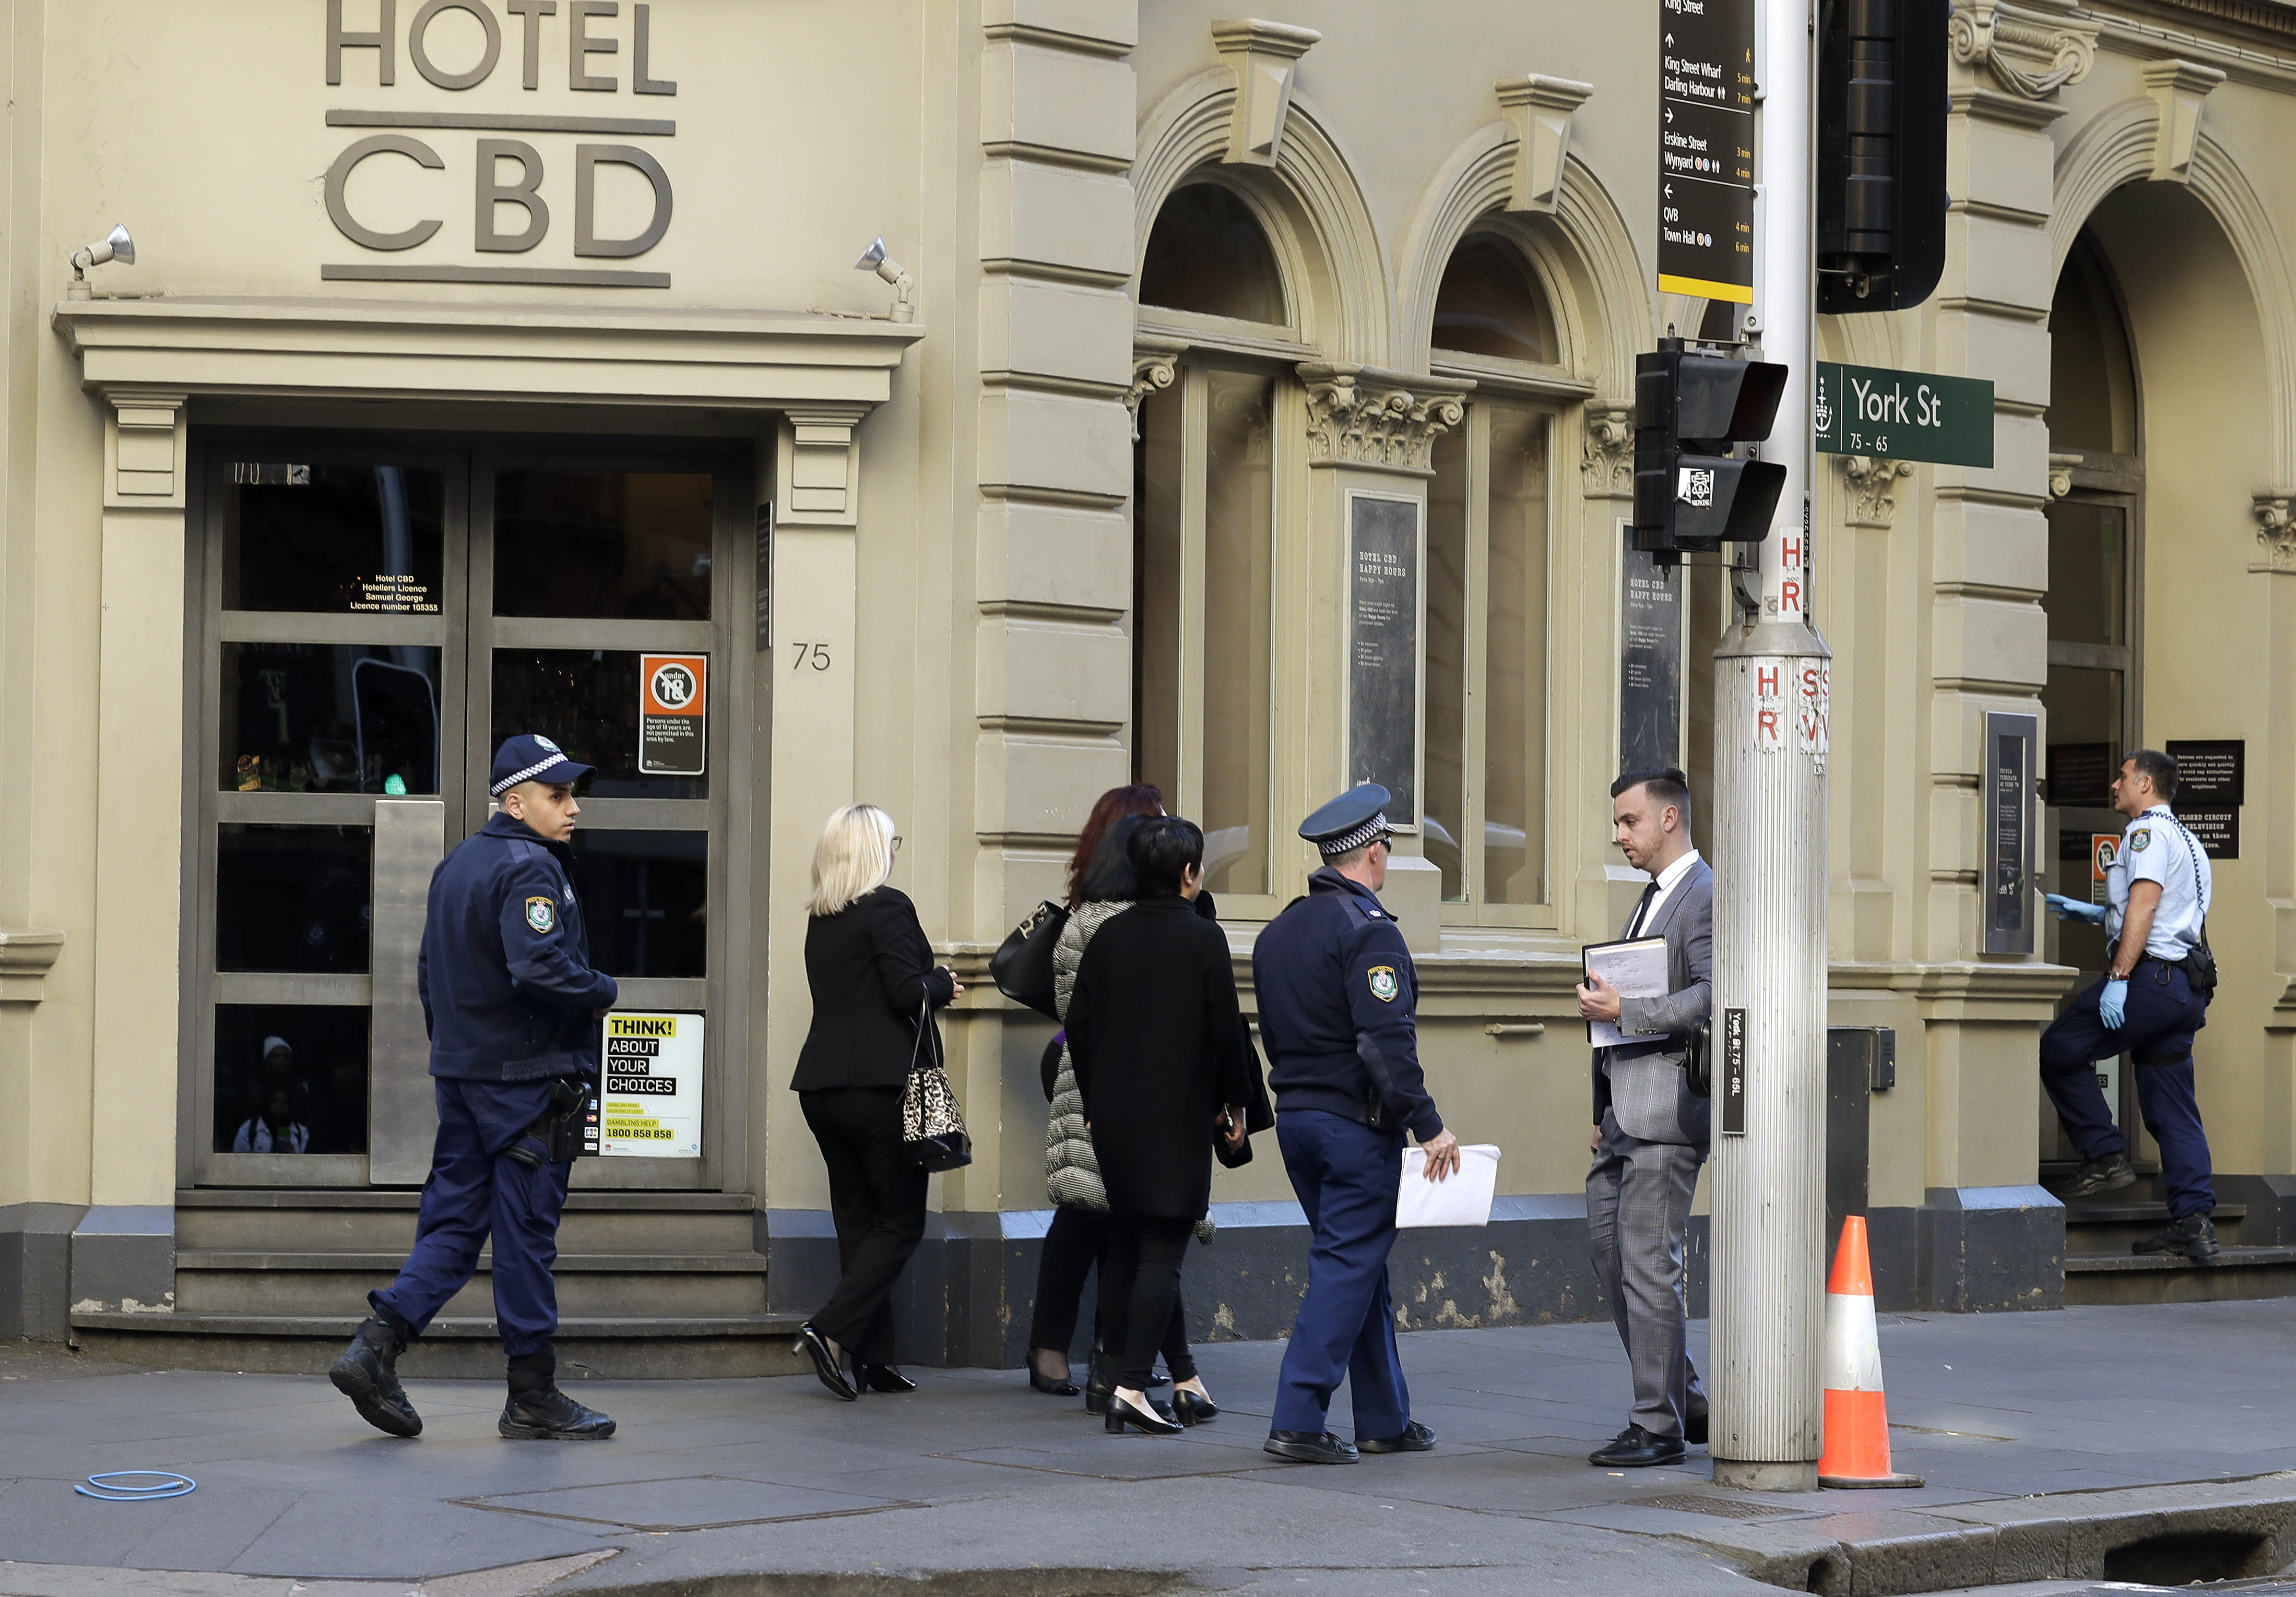 """Police work at a scene where a man attempted to stab multiple people in Sydney, Australia, Tuesday, Aug. 13, 2019. Police and witnesses say a knife-wielding man yelling """"Allahu akbar,"""" or """"God is great,"""" has attempted to stab several people before being arrested, with one person taken to a hospital. (AP Photo/Rick Rycroft)"""